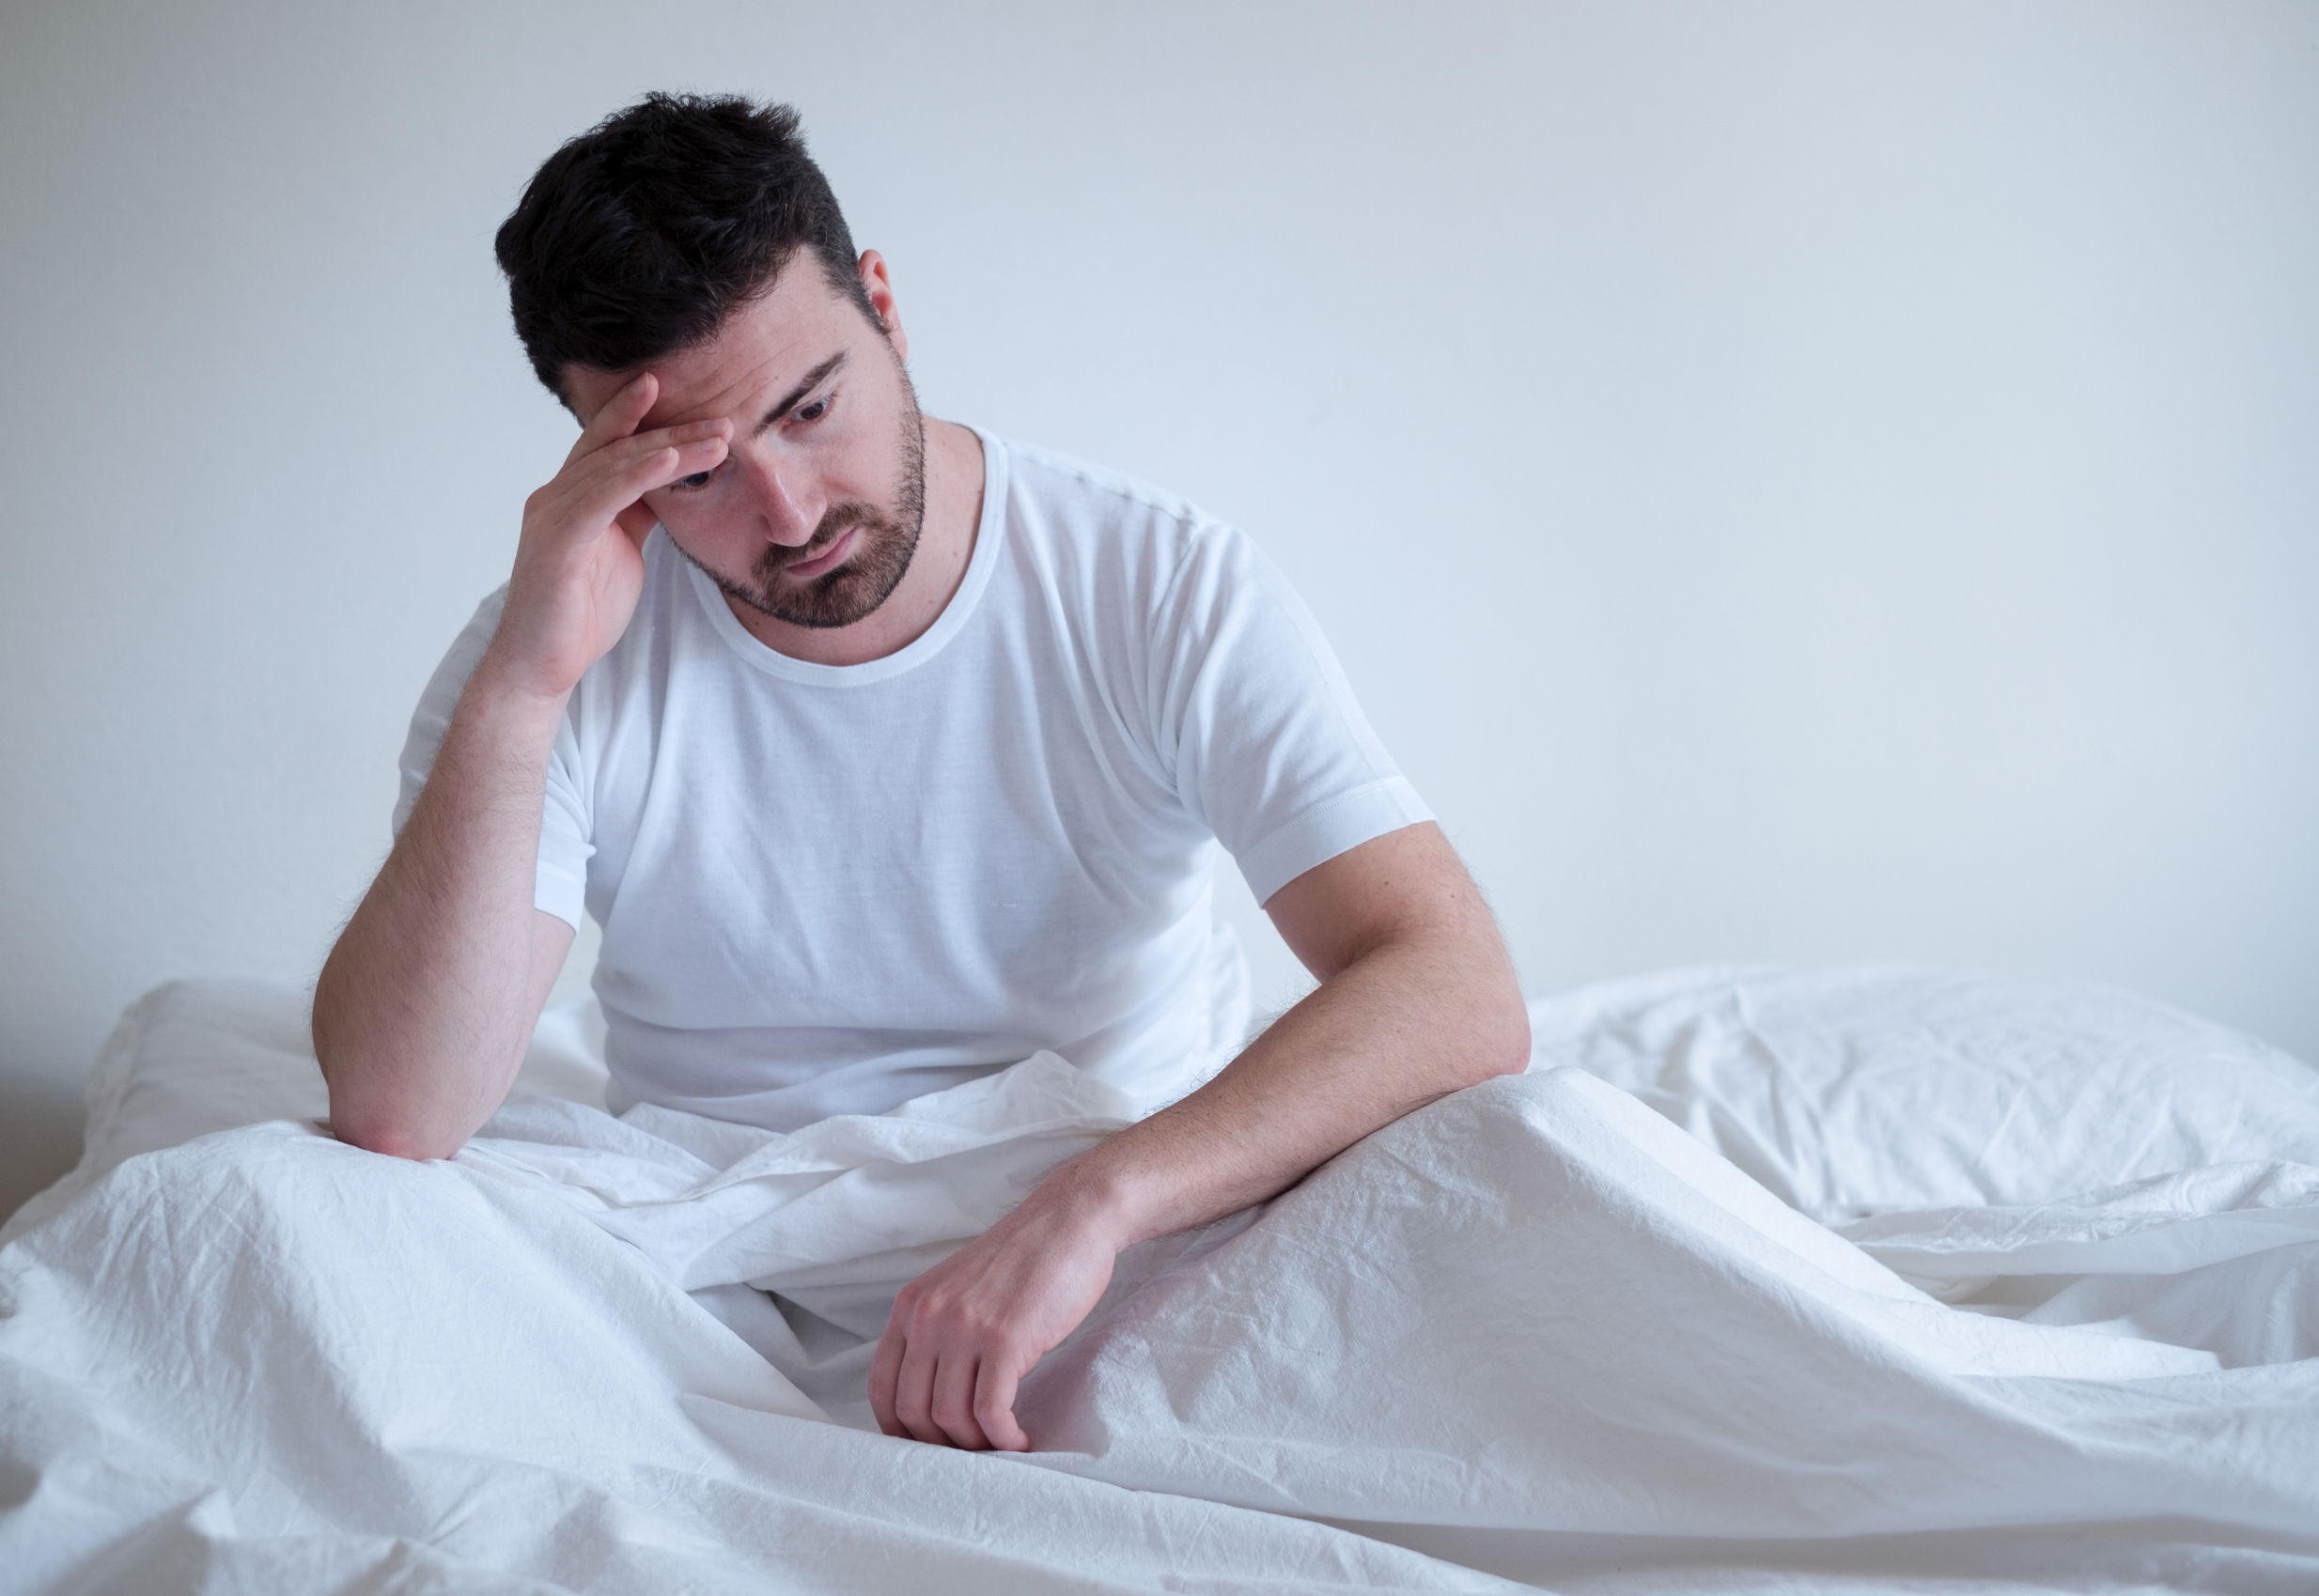 causes of sleep deprivation